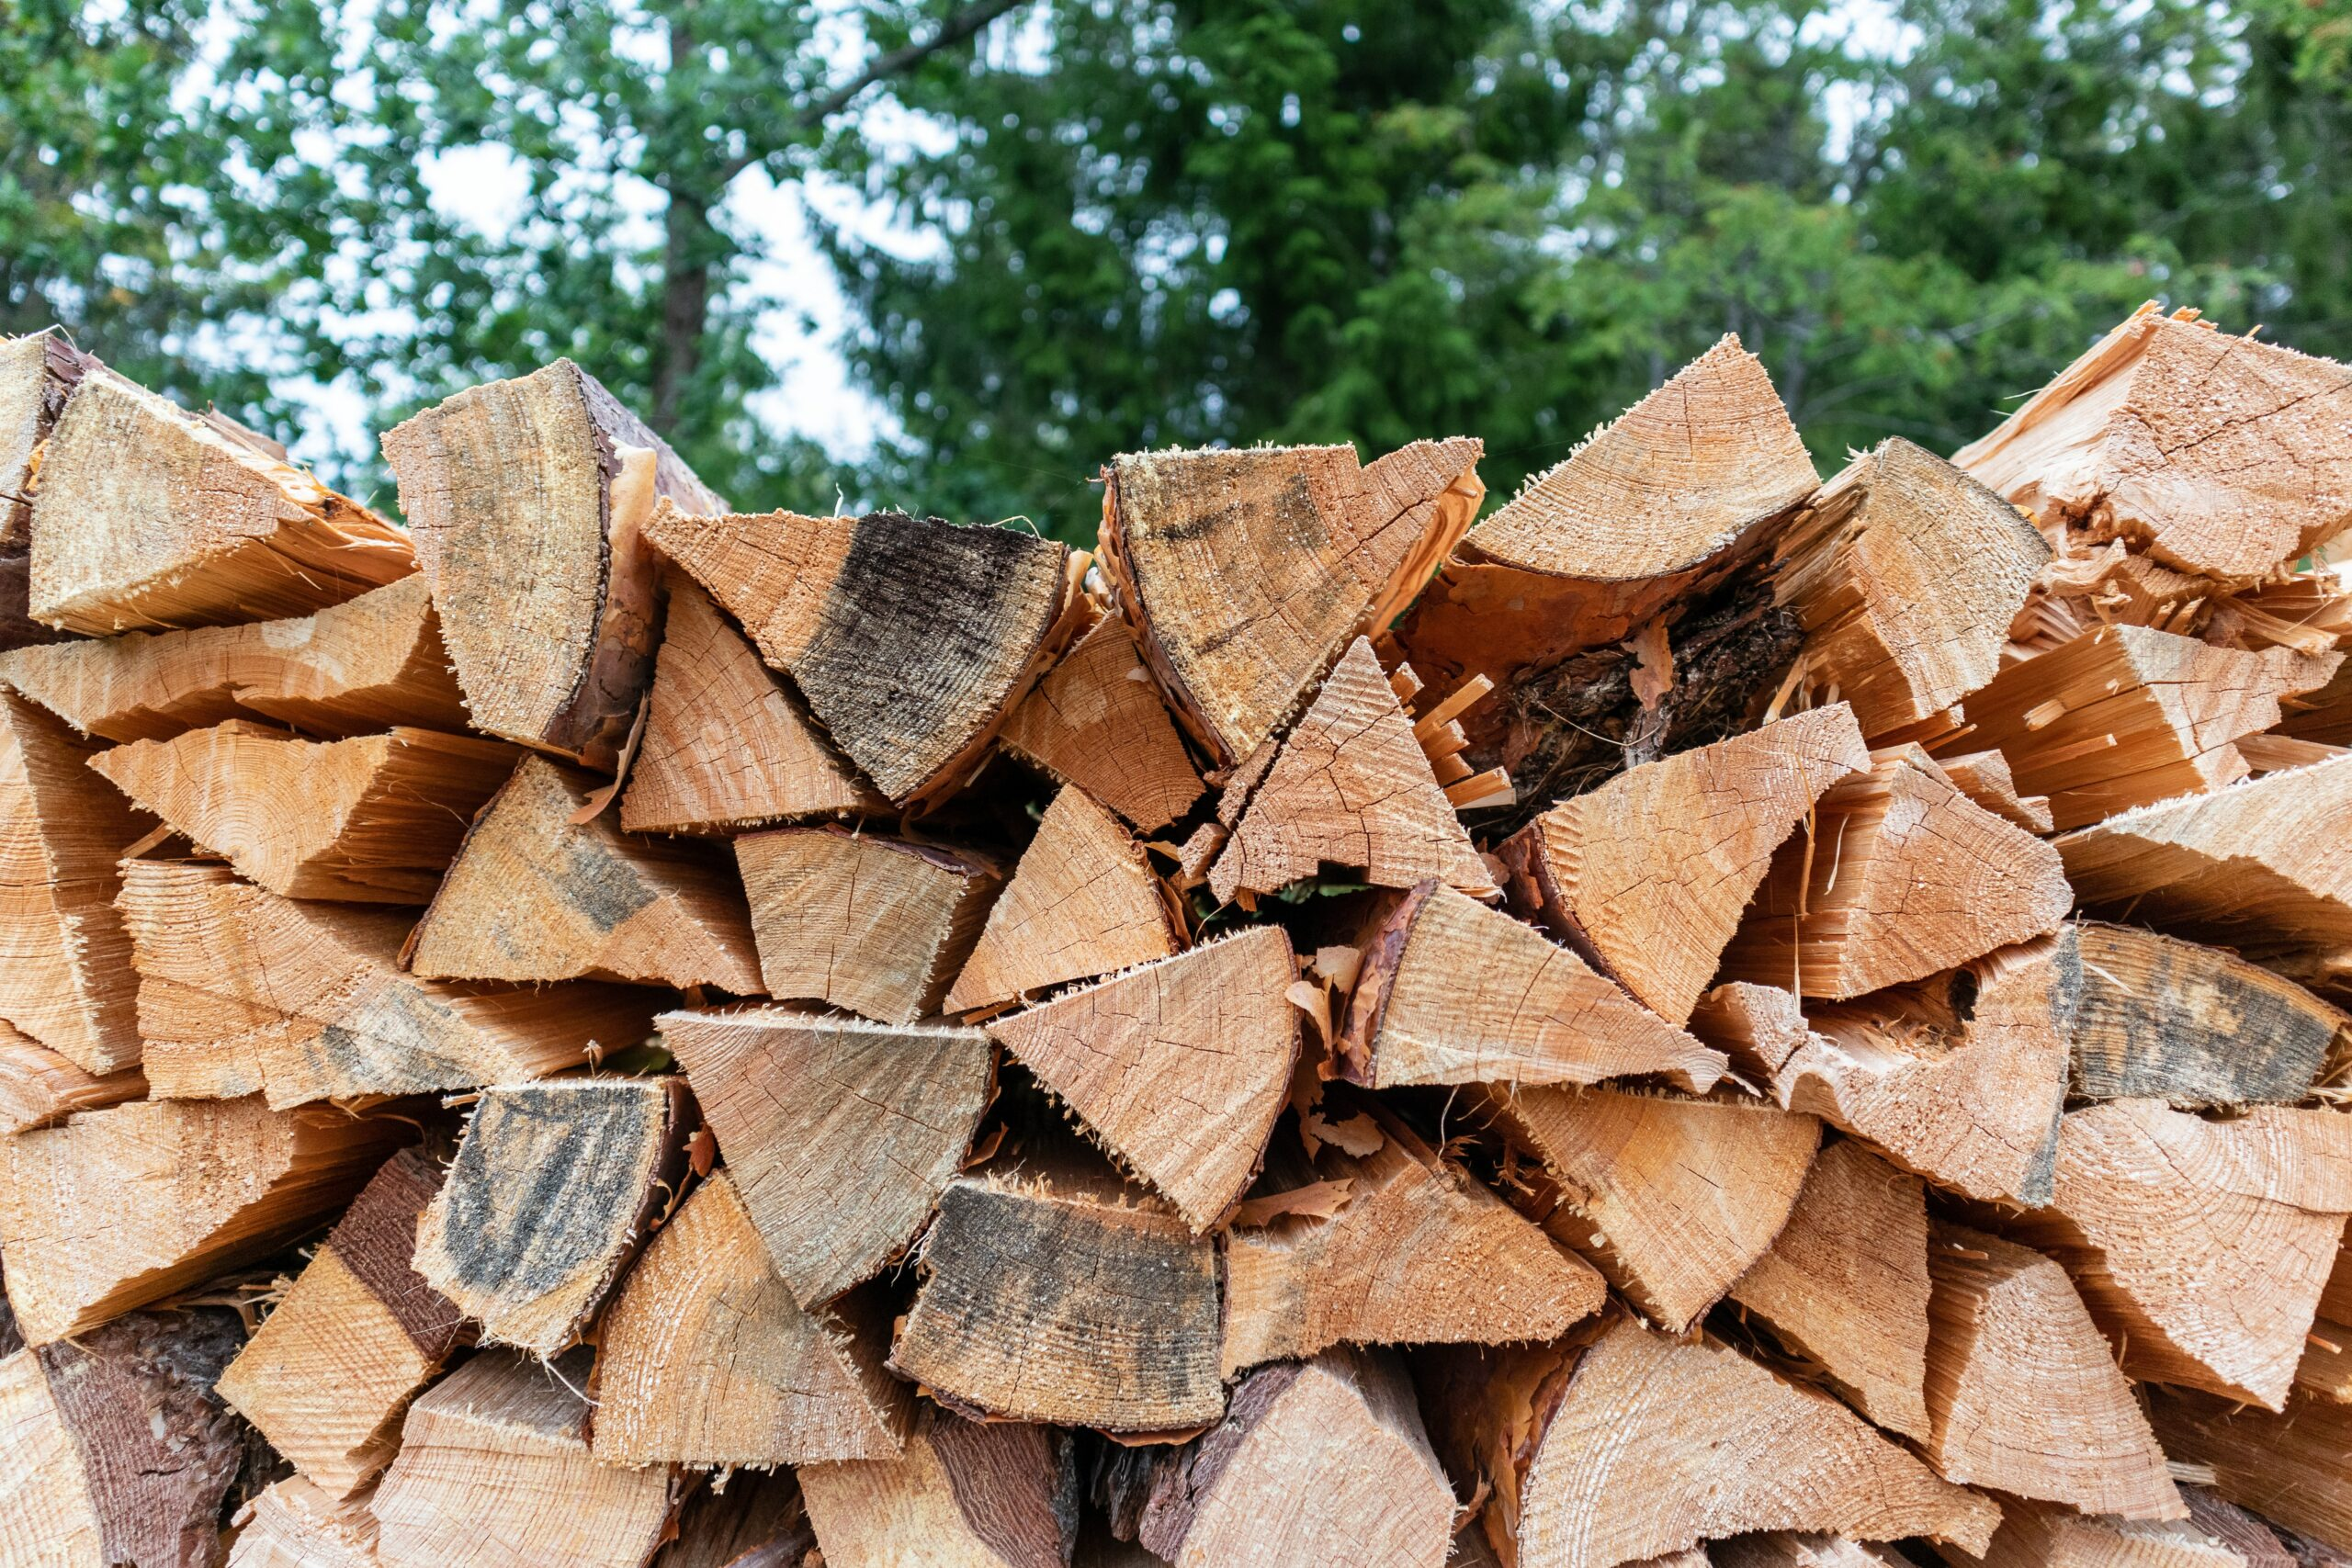 Using dry, seasoned wood will improve the efficiency of your fireplace